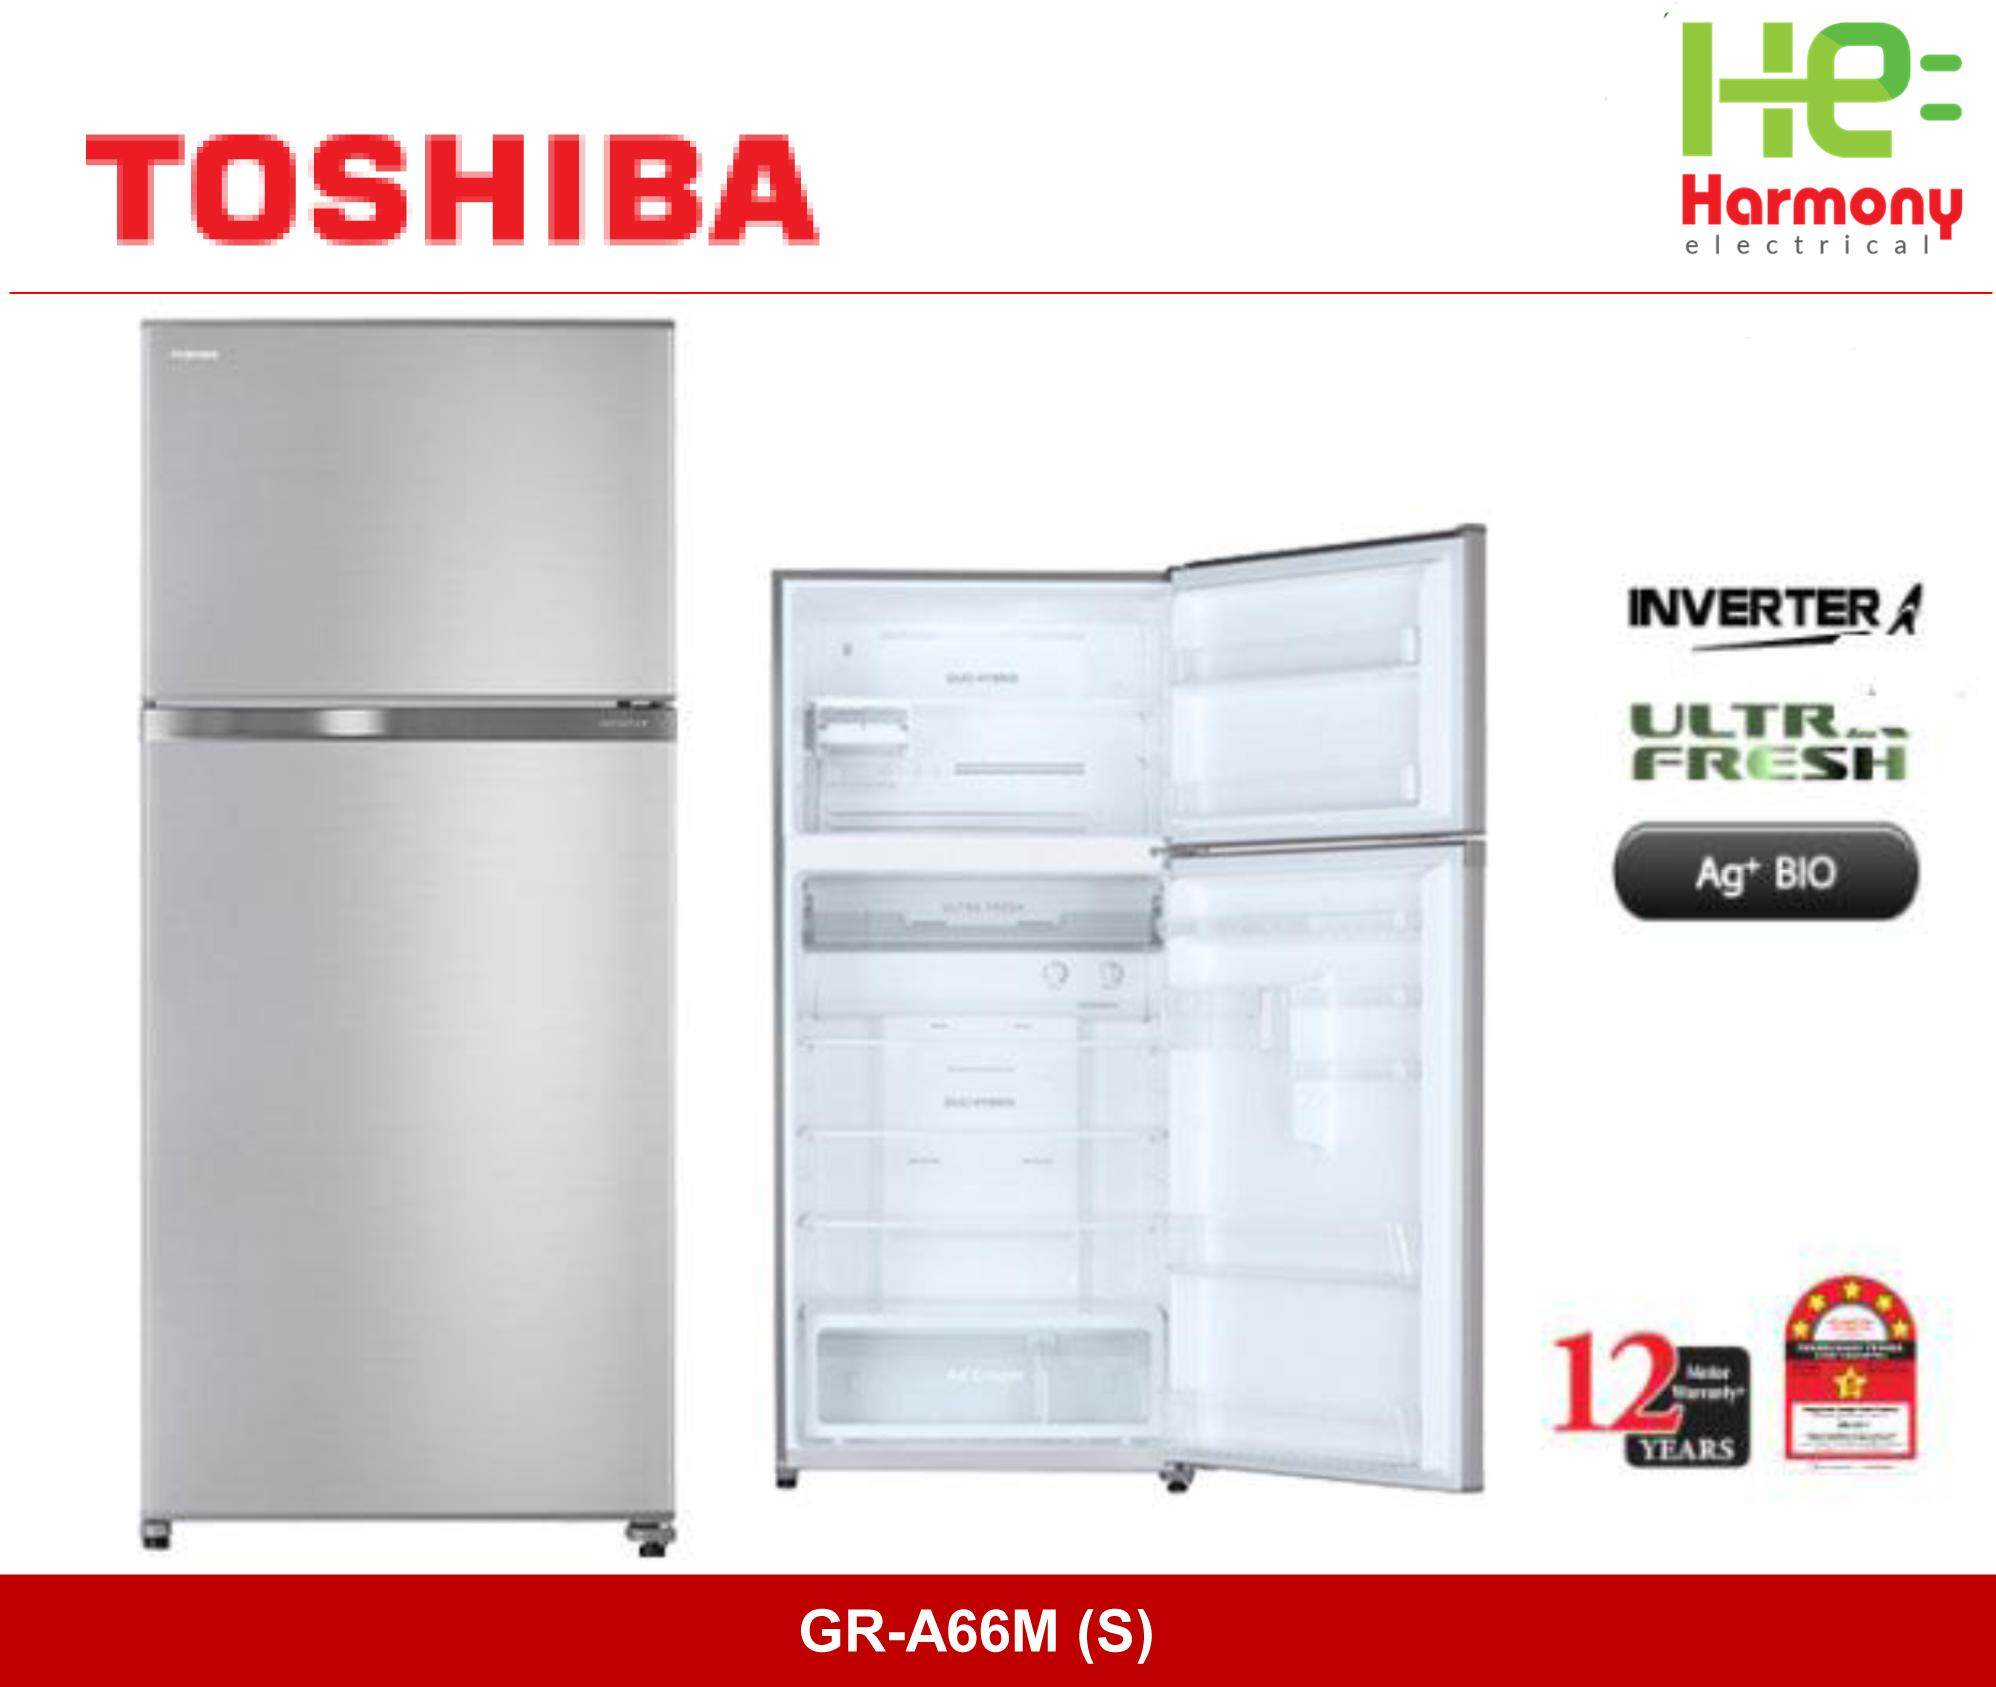 New : Toshiba 661L 2 Doors Inverter Refrigerator With Ag+ BIO GR-A66M (S) ( 12 years Compressor Warranty ) (Peti Sejuk)